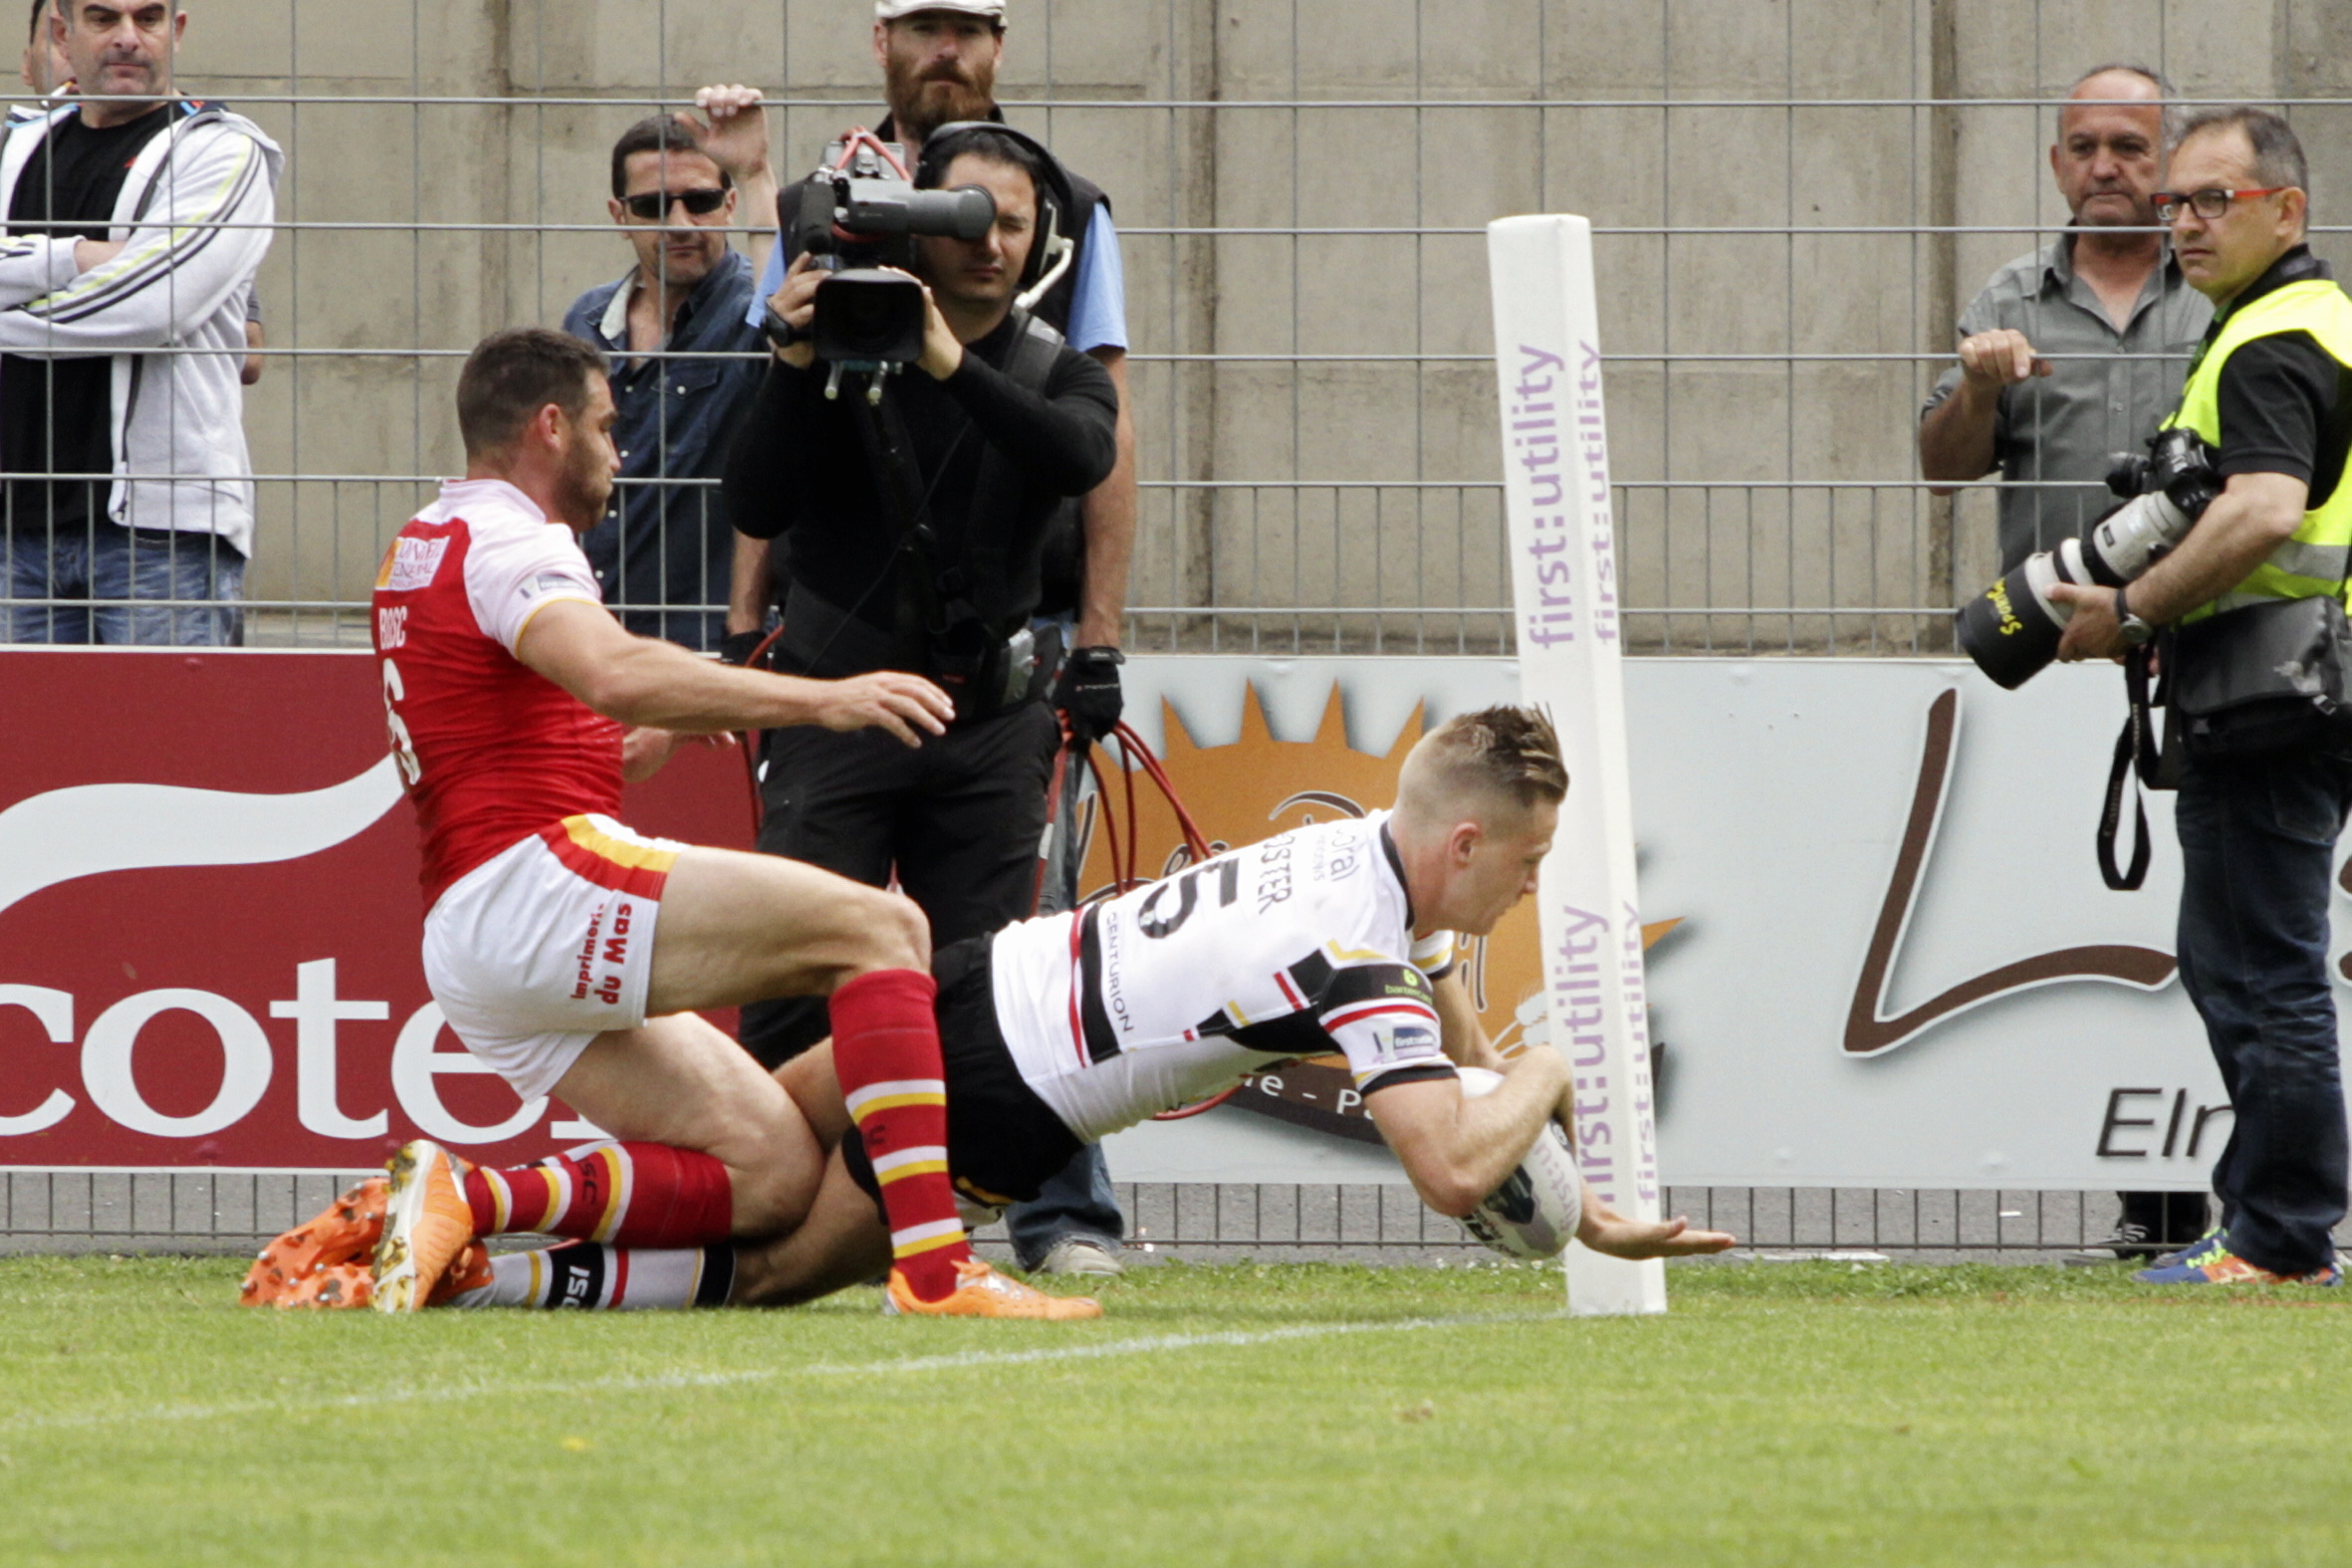 Relegation looks odds on after awful Bradford Bulls display